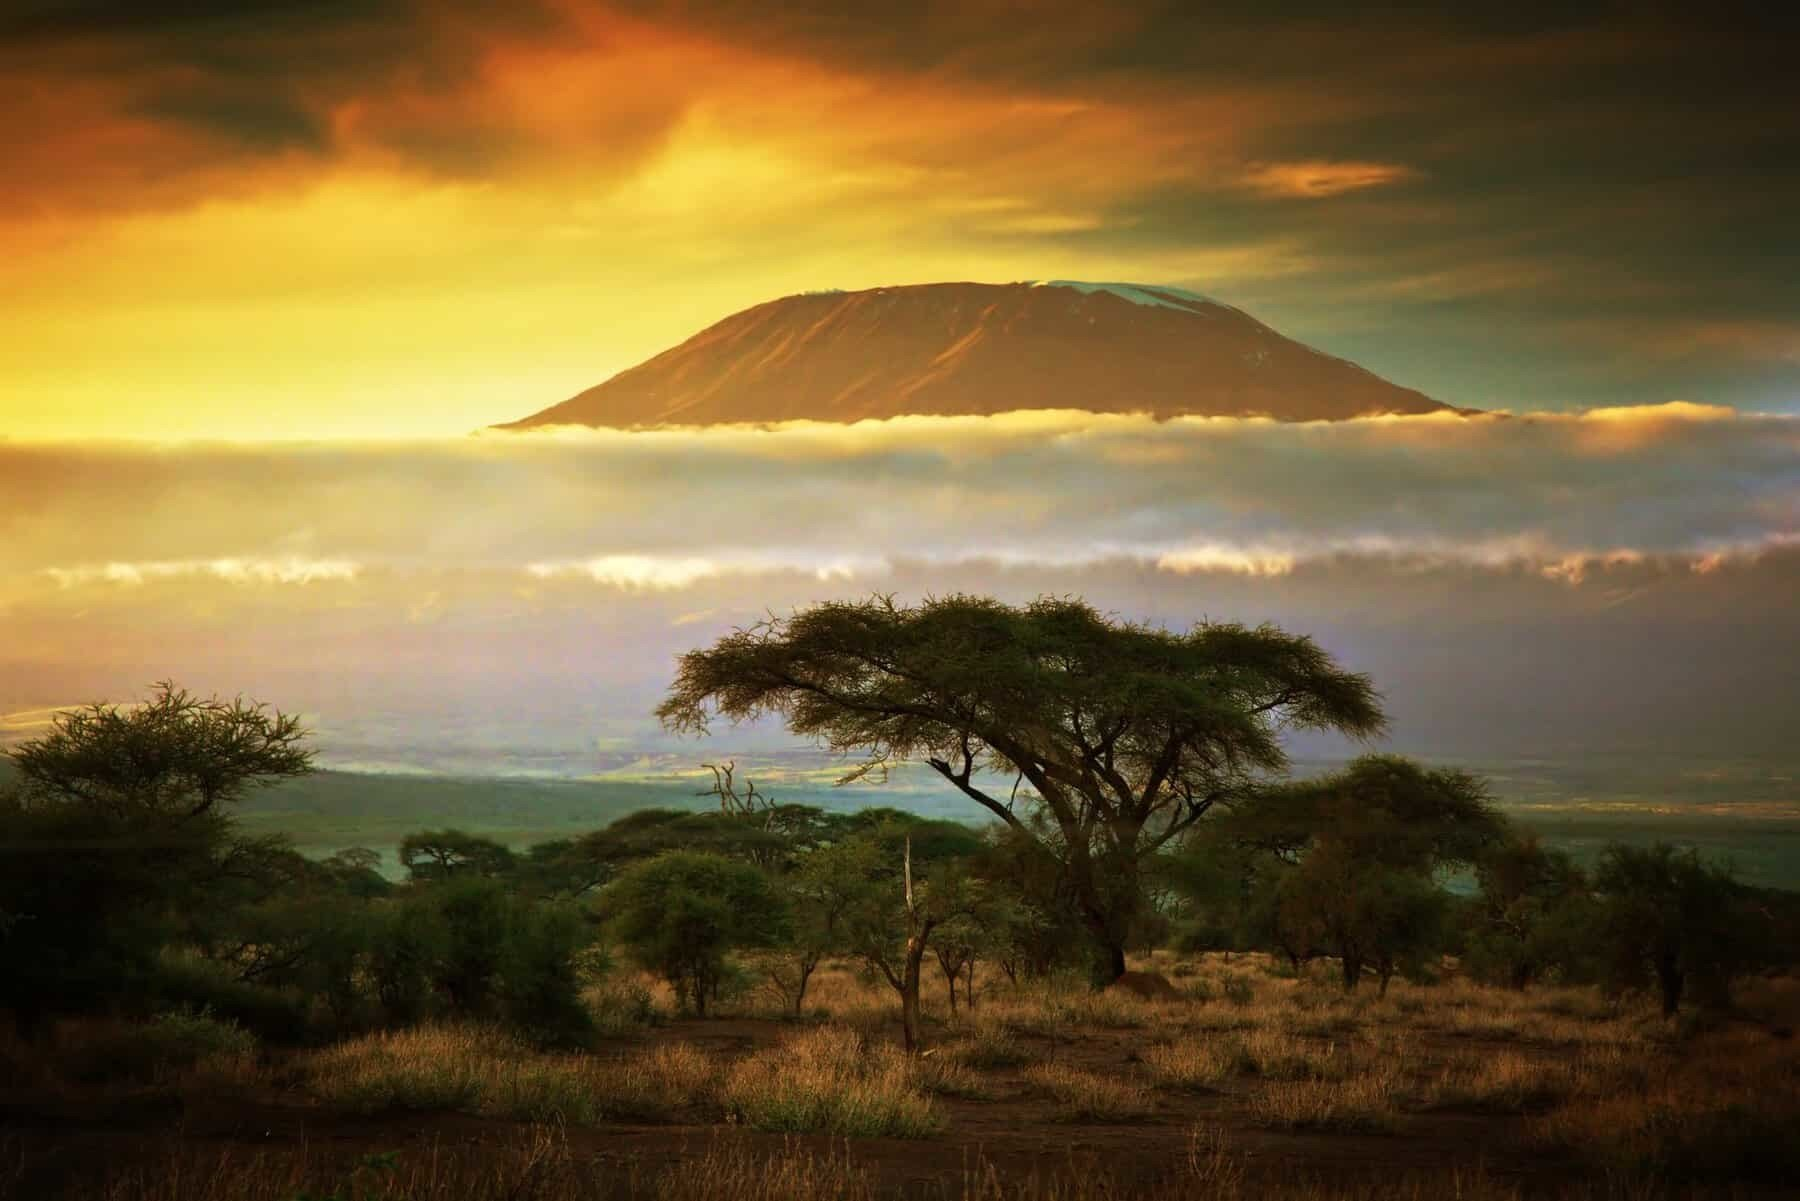 Mount Kilimanjaro and clouds line at sunset, view from savanna landscape in Amboseli, Kenya, Africa